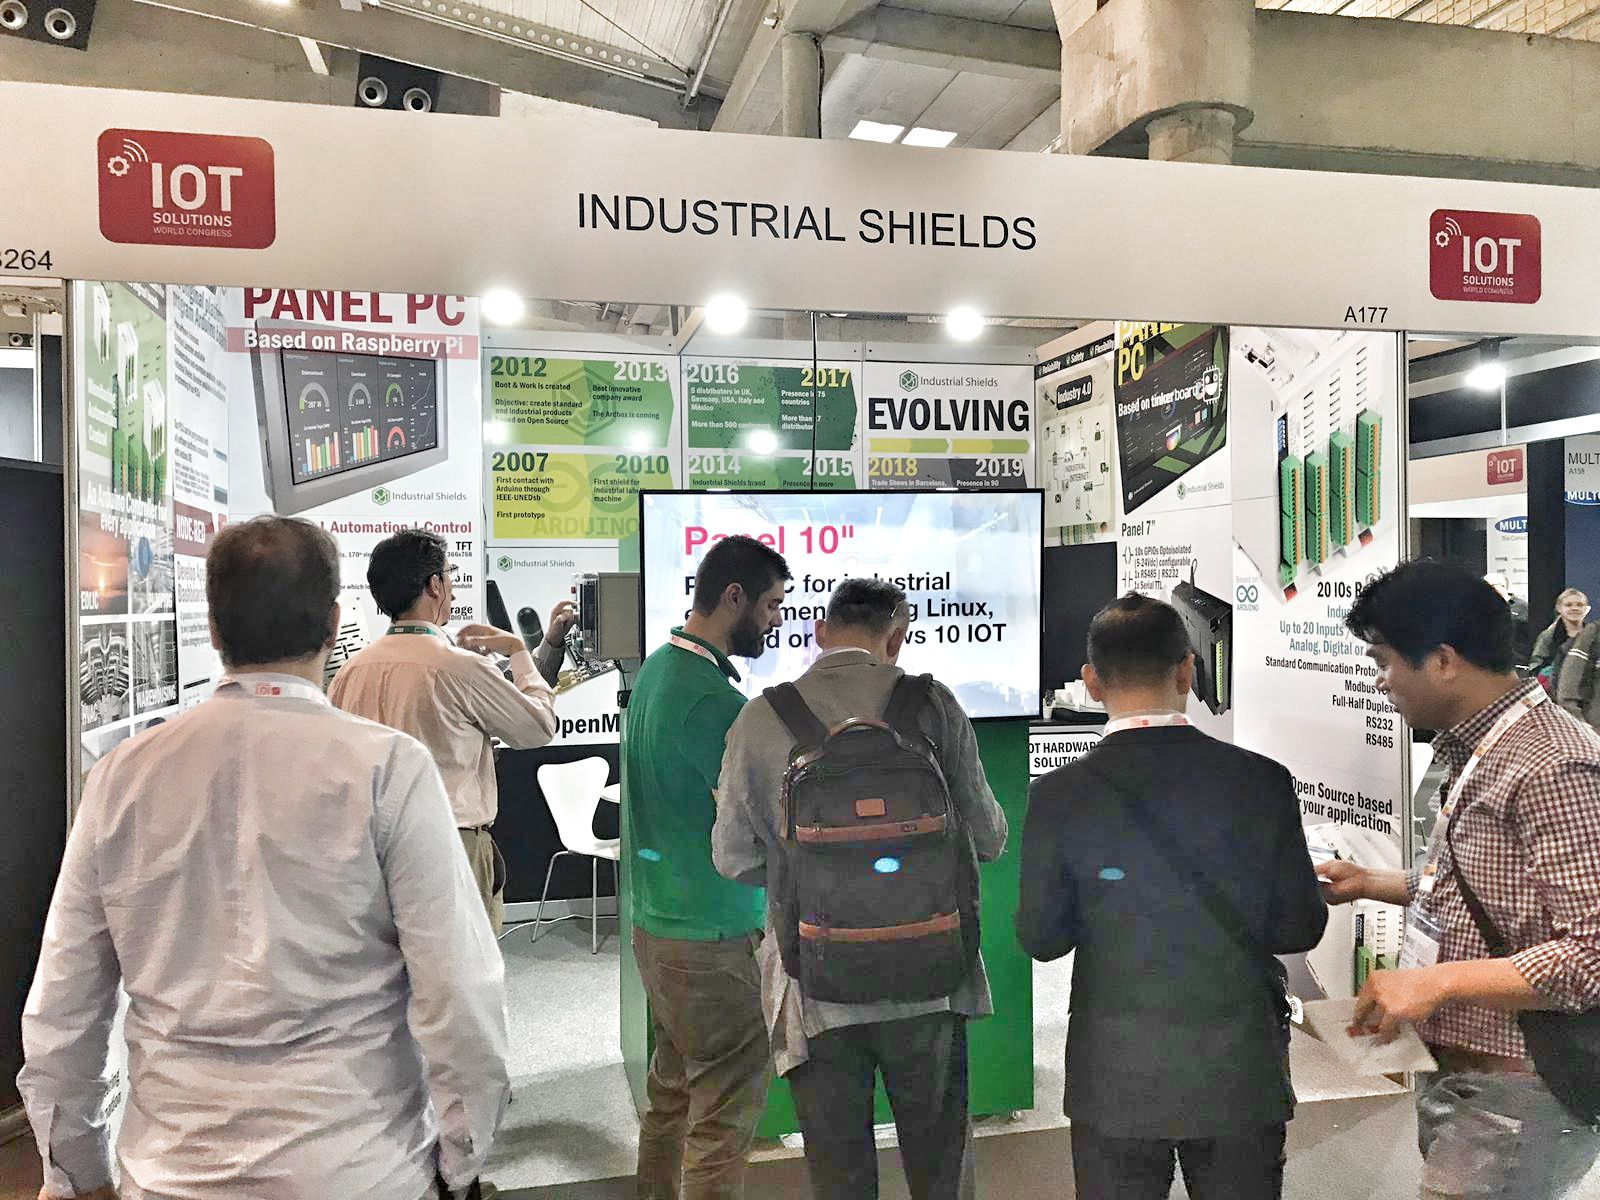 Industrial Shields's stand at IOTSWC2019